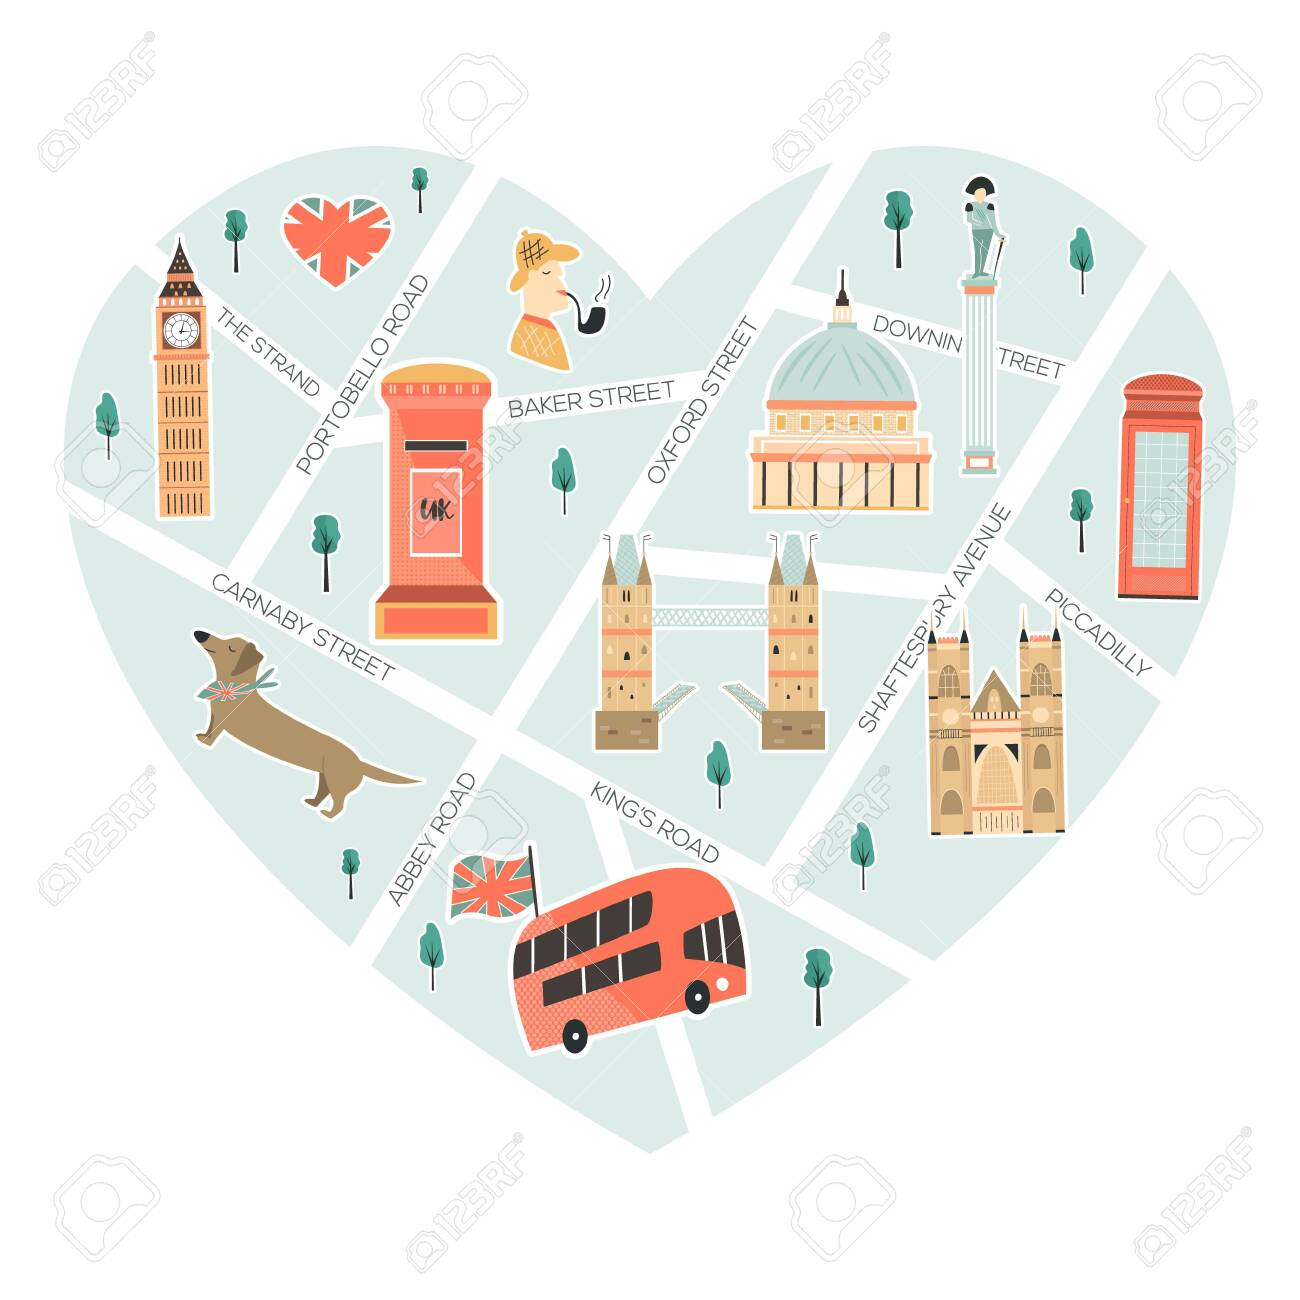 Map Of Landmarks In London.Illustrated Map Of London With Landmarks Symbols